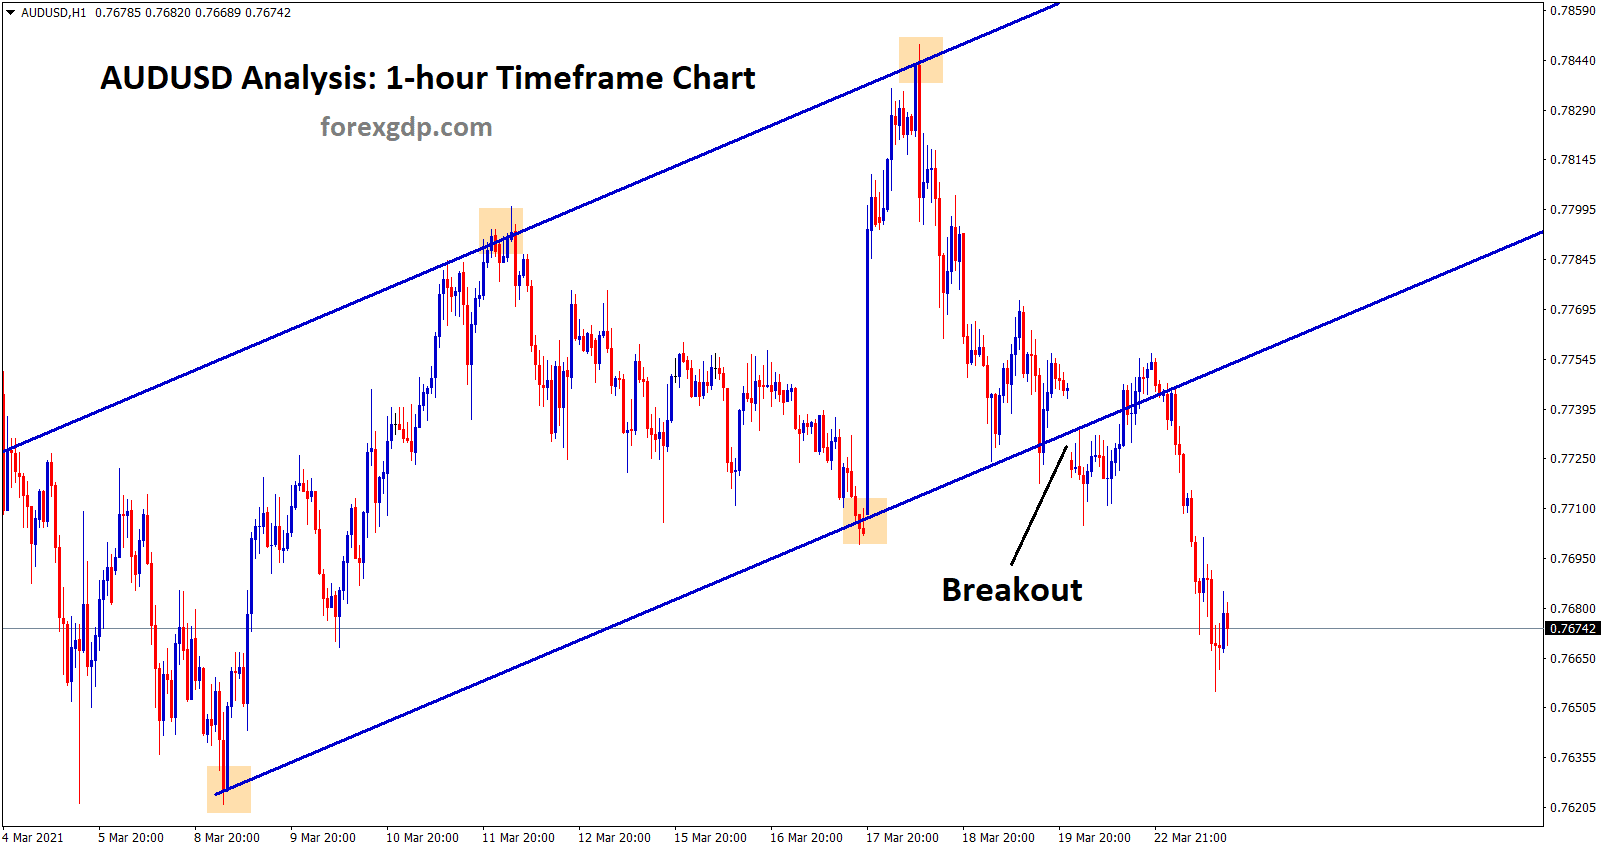 breakout at the bottom of the uptrend line in1hr